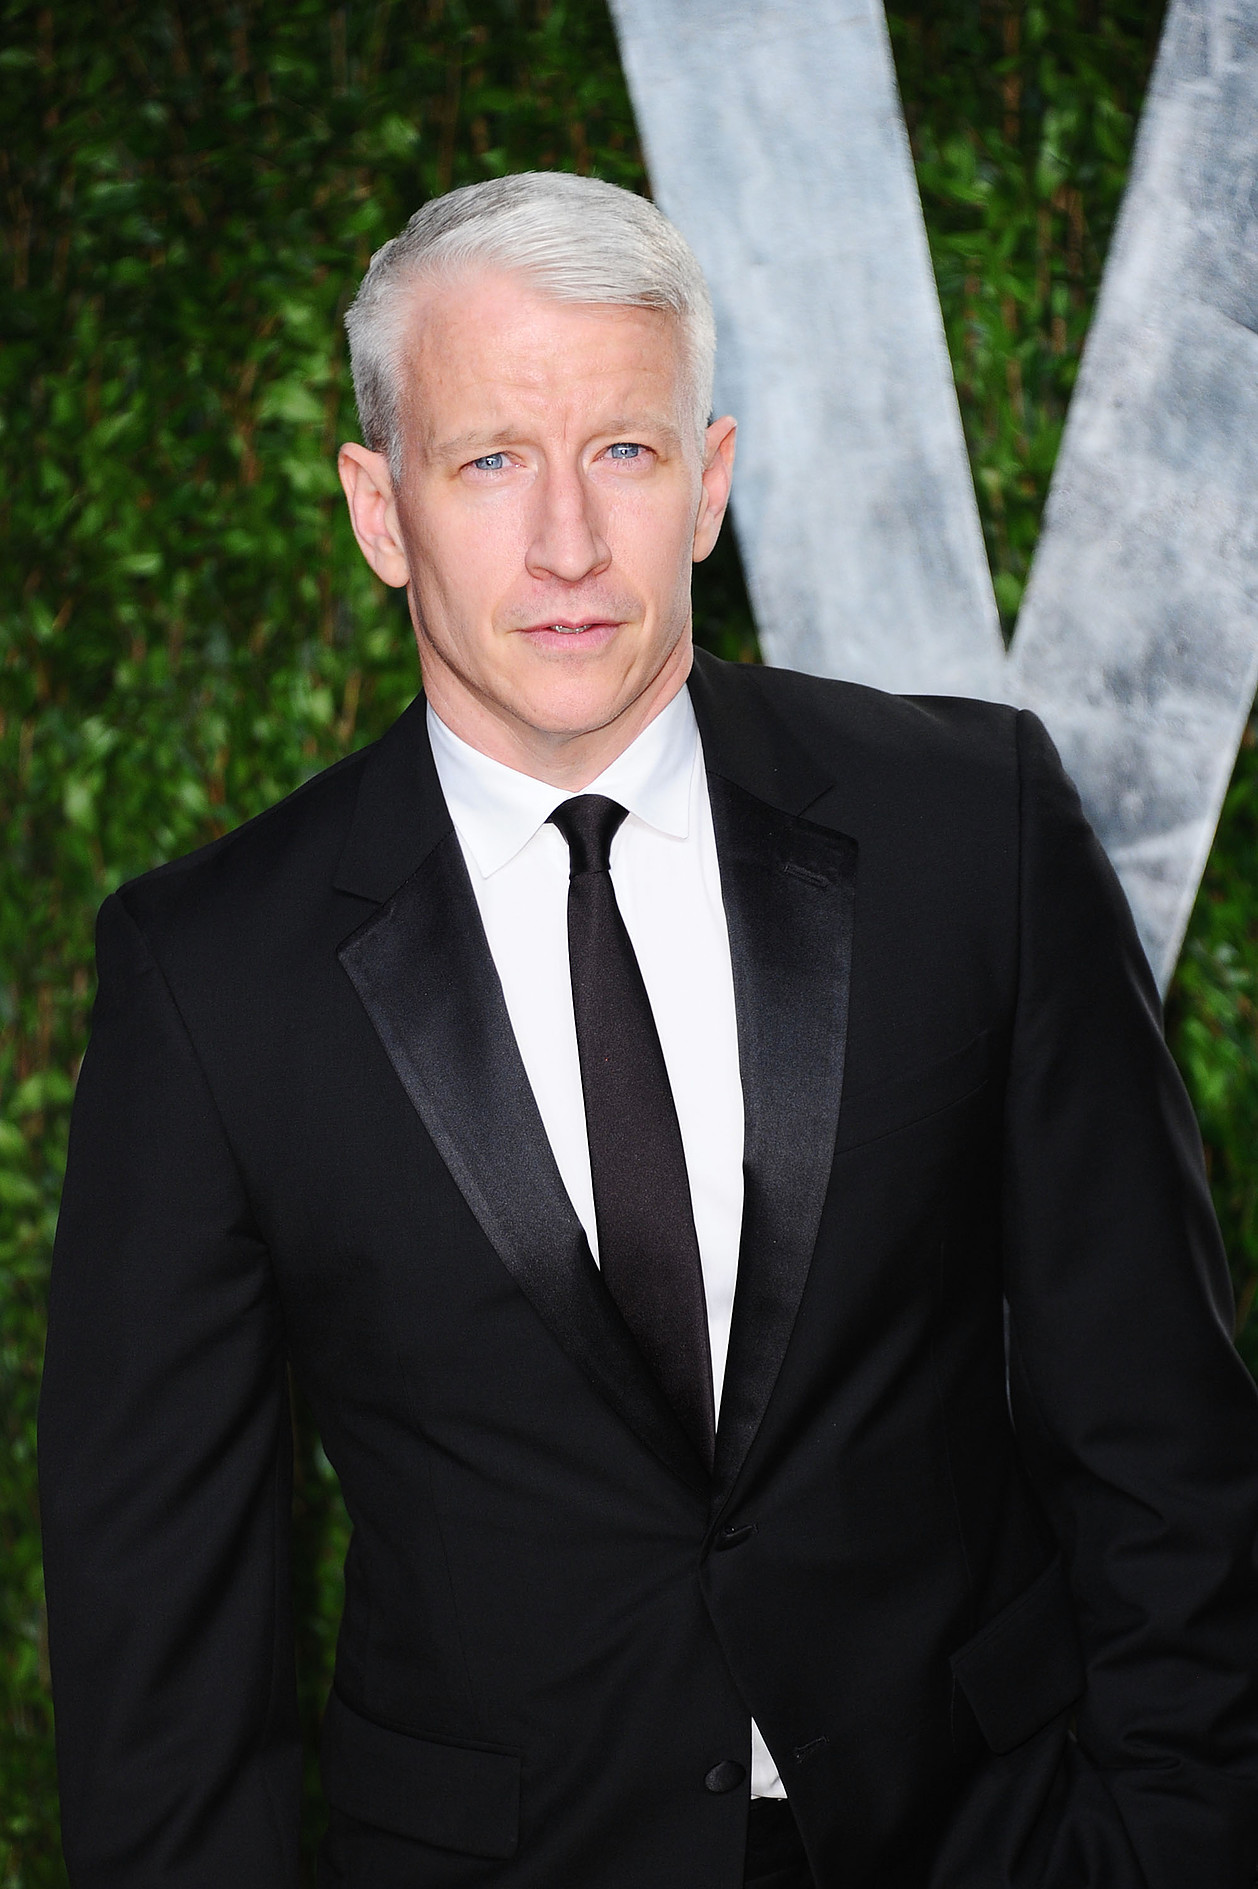 WEST HOLLYWOOD, CA - FEBRUARY 26: TV personality Anderson Cooper arrives at the 2012 Vanity Fair Oscar Party hosted by Graydon Carter at Sunset Tower on February 26, 2012 in West Hollywood, California. (Photo by Alberto E. Rodriguez/Getty Images)